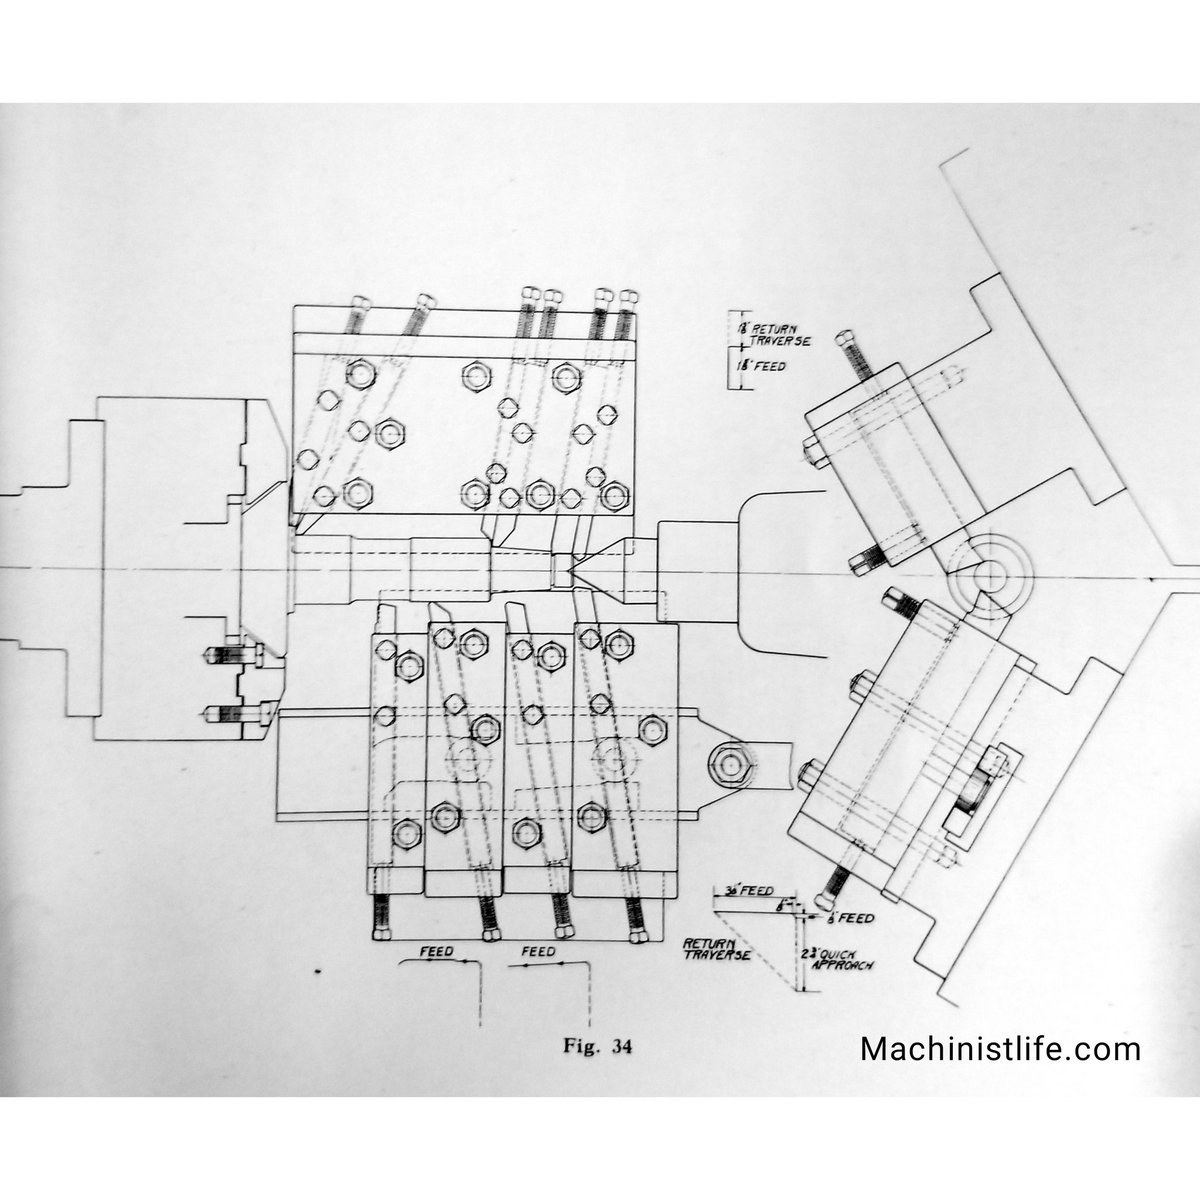 Grungy Machinist On Twitter Rk Leblondltd Automatic Lathe Manual Engine Parts Diagram Published 1930 Designed To Operated By An Overhead Belt Drive System It Had A Big Clutch With Spindle Start And Stop Both Sides Of